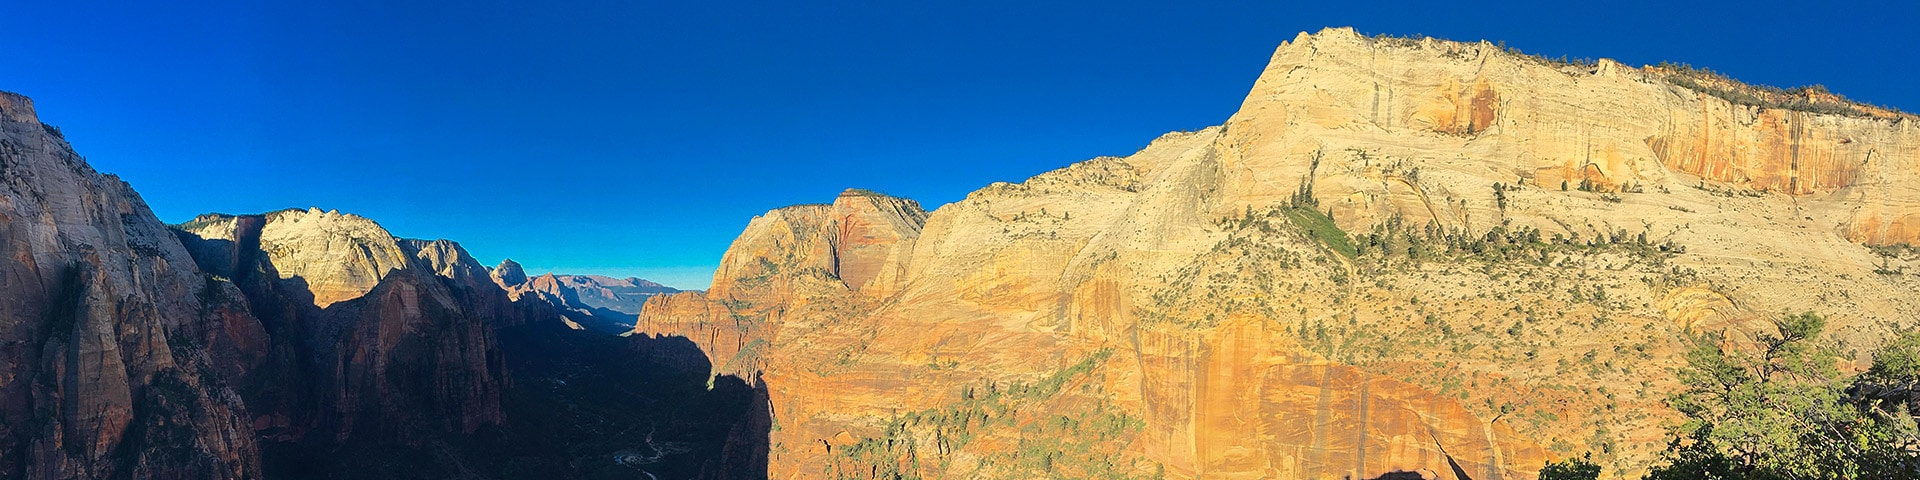 Angel's Landing Hike in Zion National Park